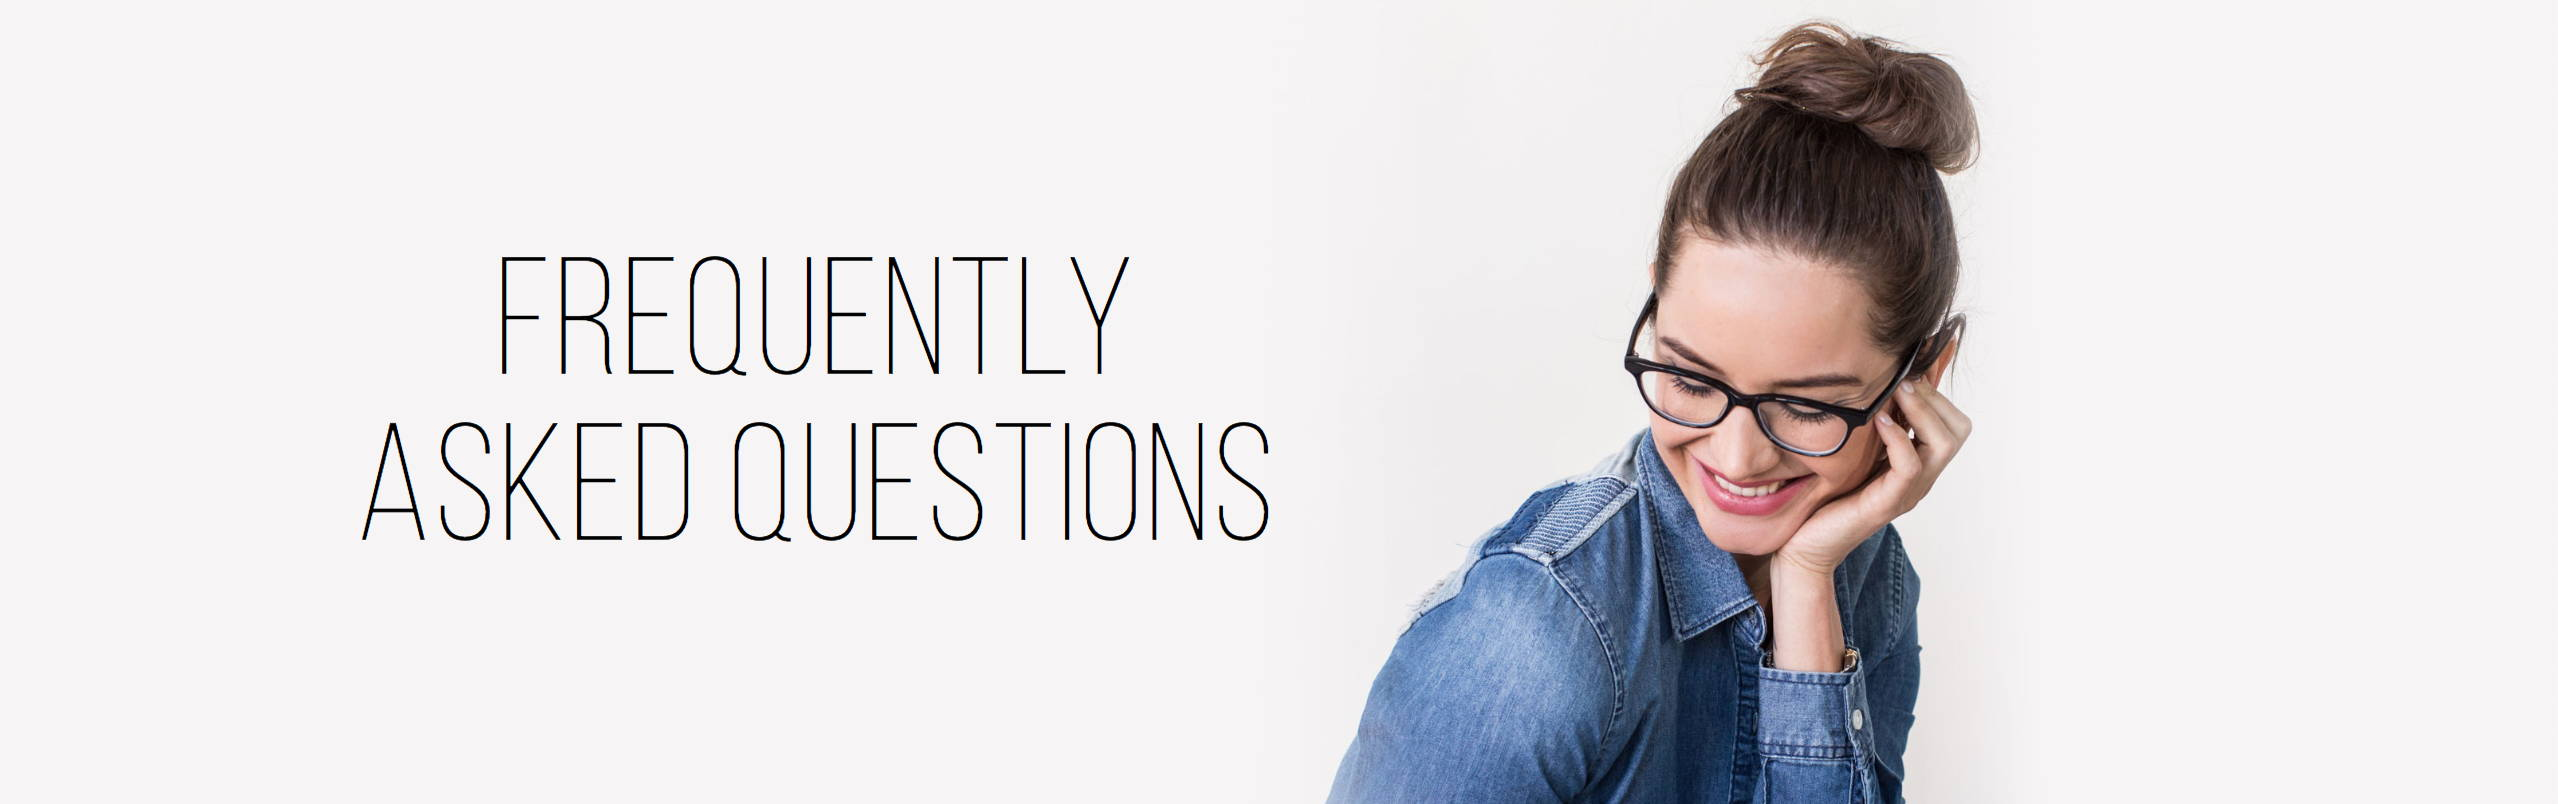 hydrafacial frequently asked questions